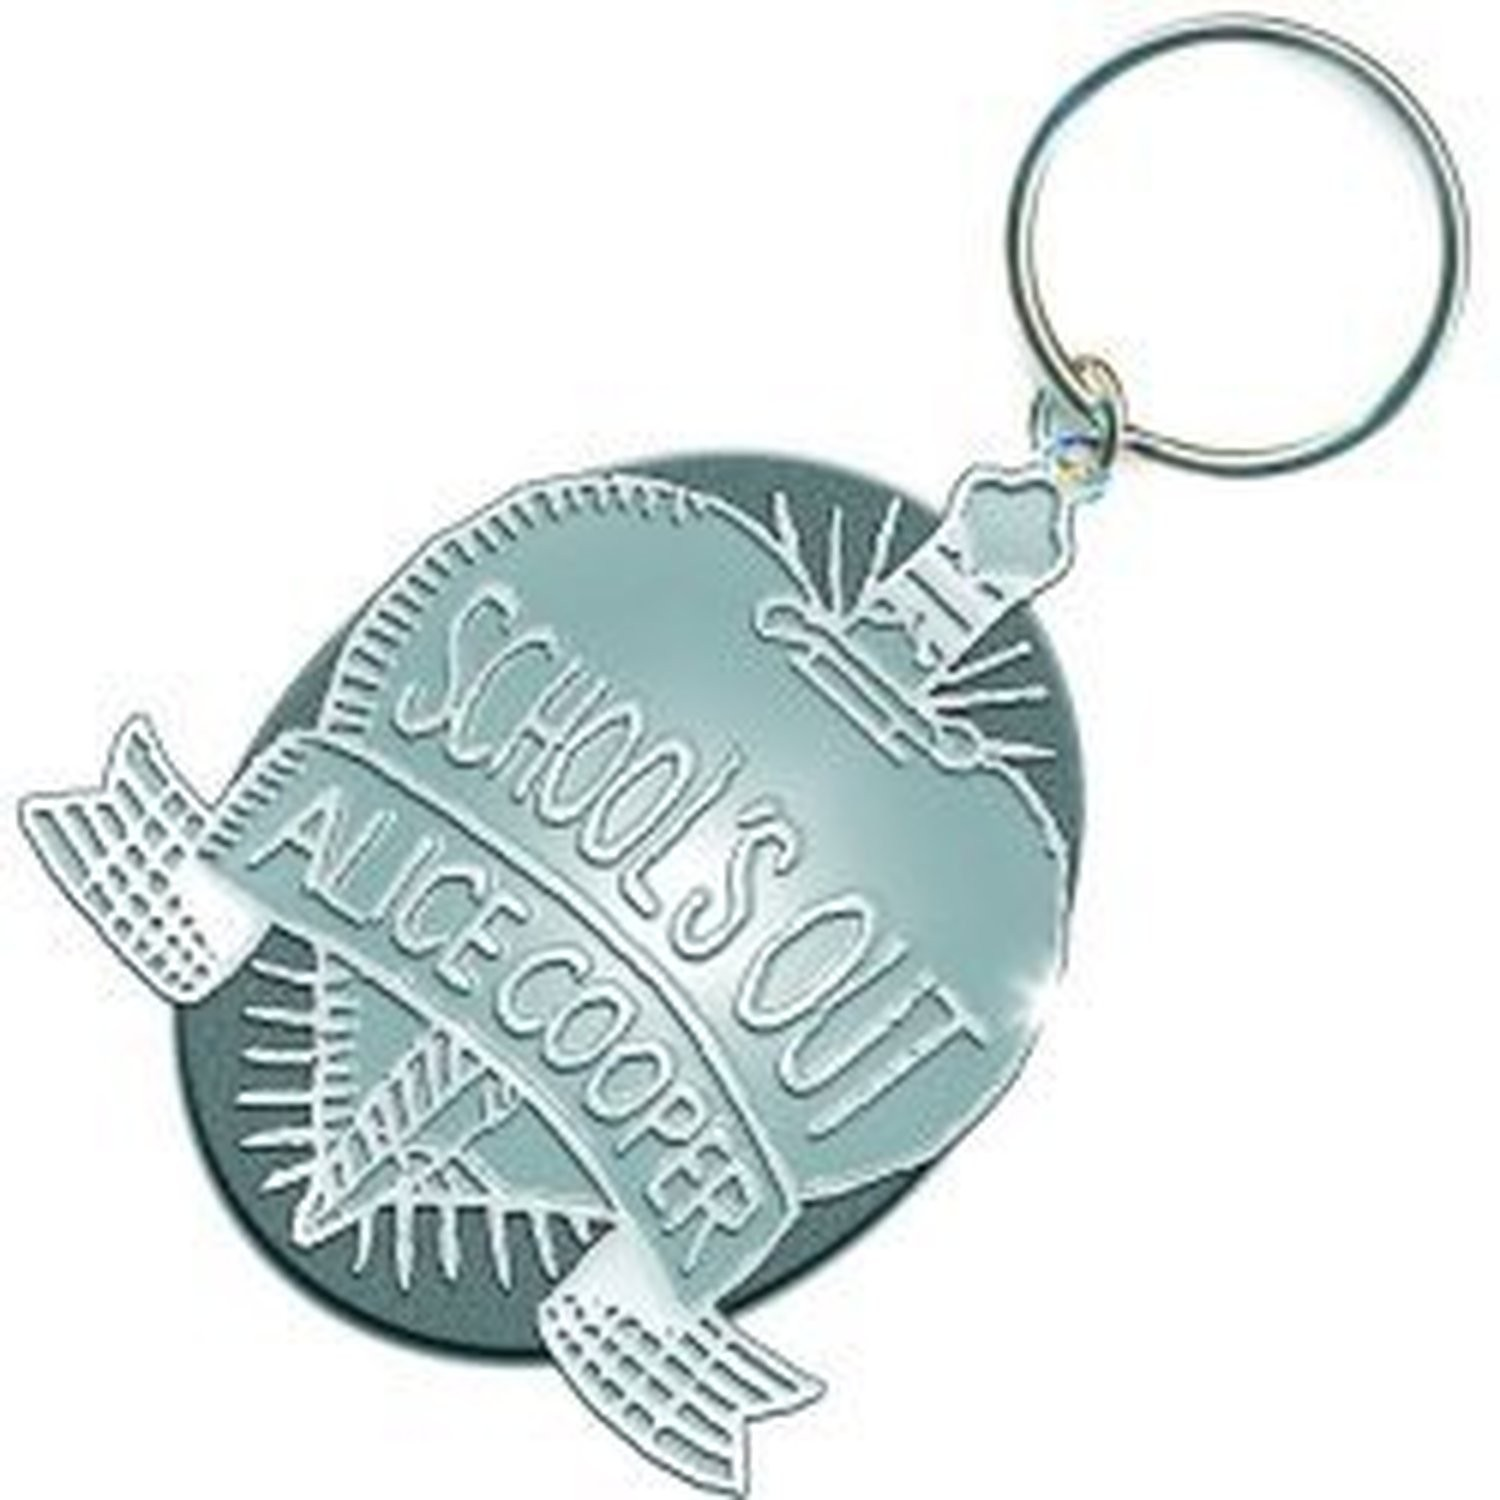 Alice Cooper Schools Out Crest Band Logo Metal Keychain Keyring Gift Official